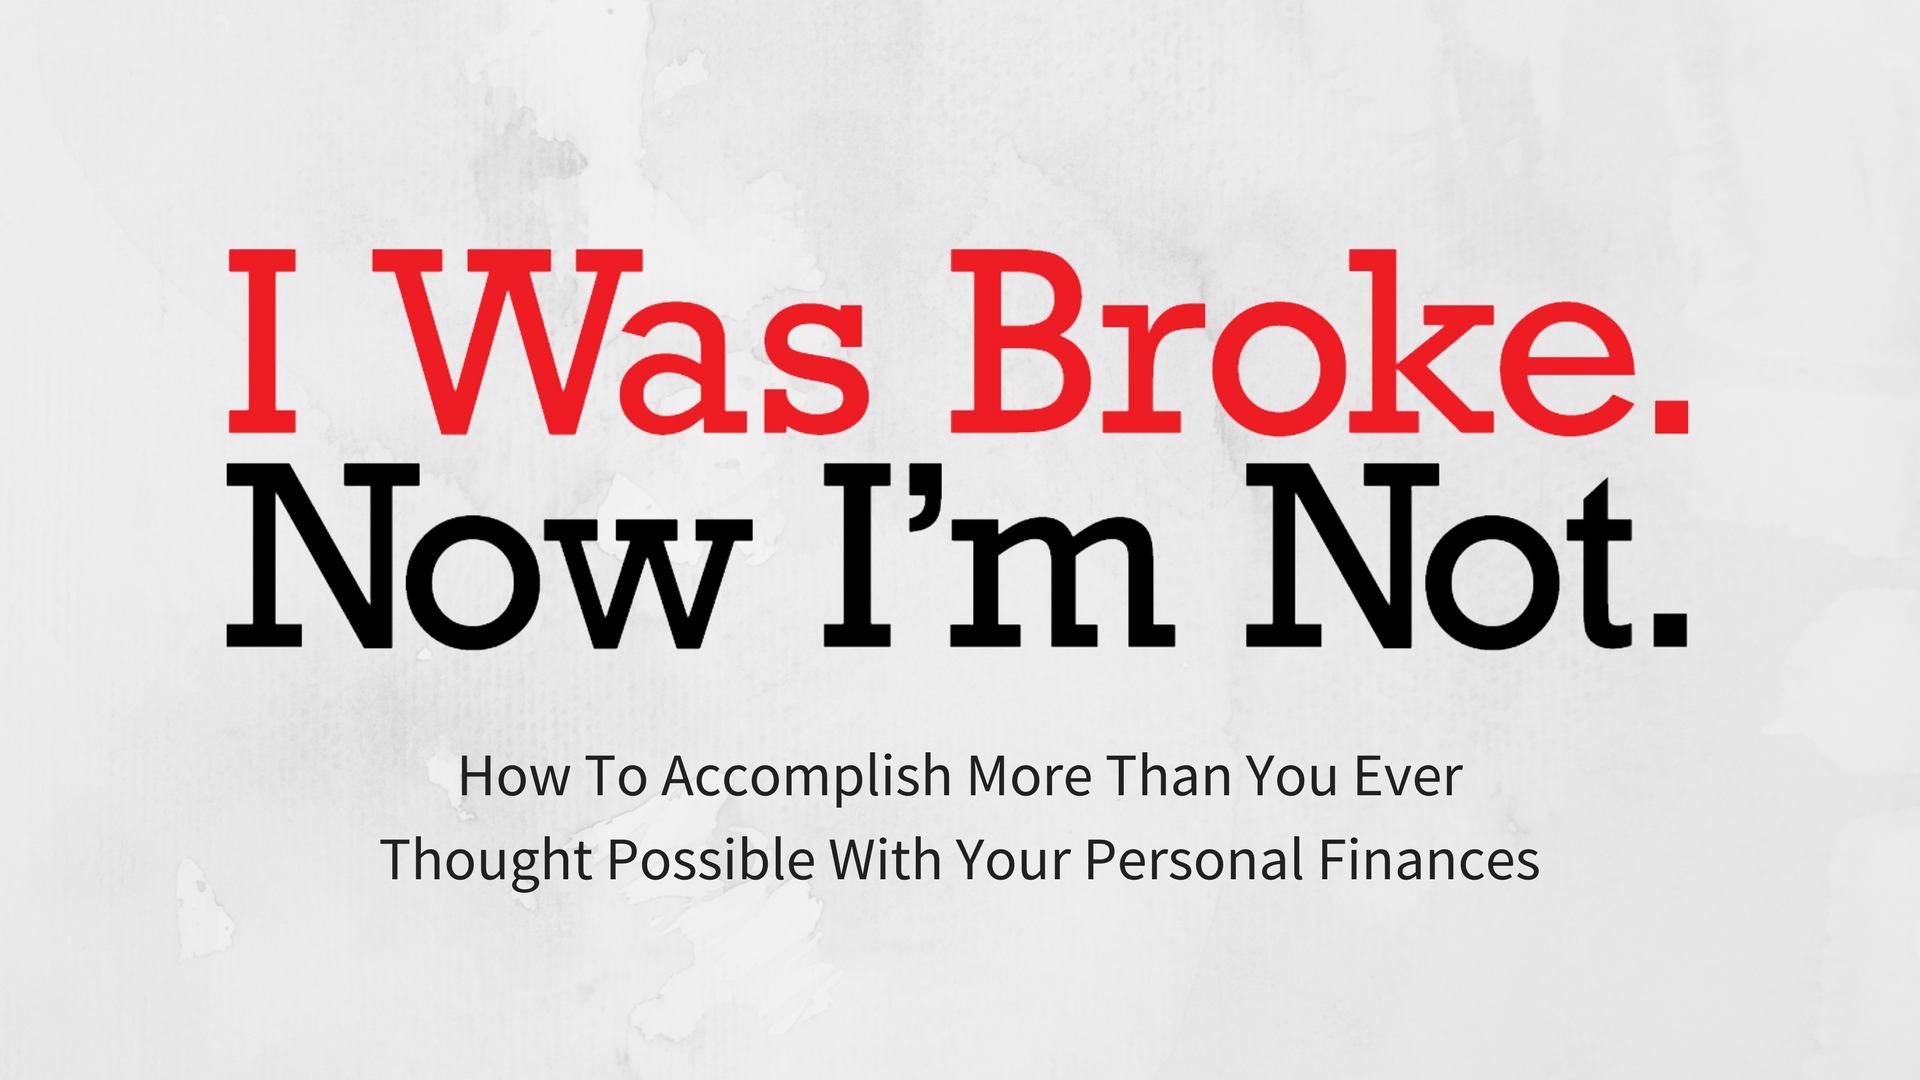 How to accomplish more than you ever thought possible with your personal finances